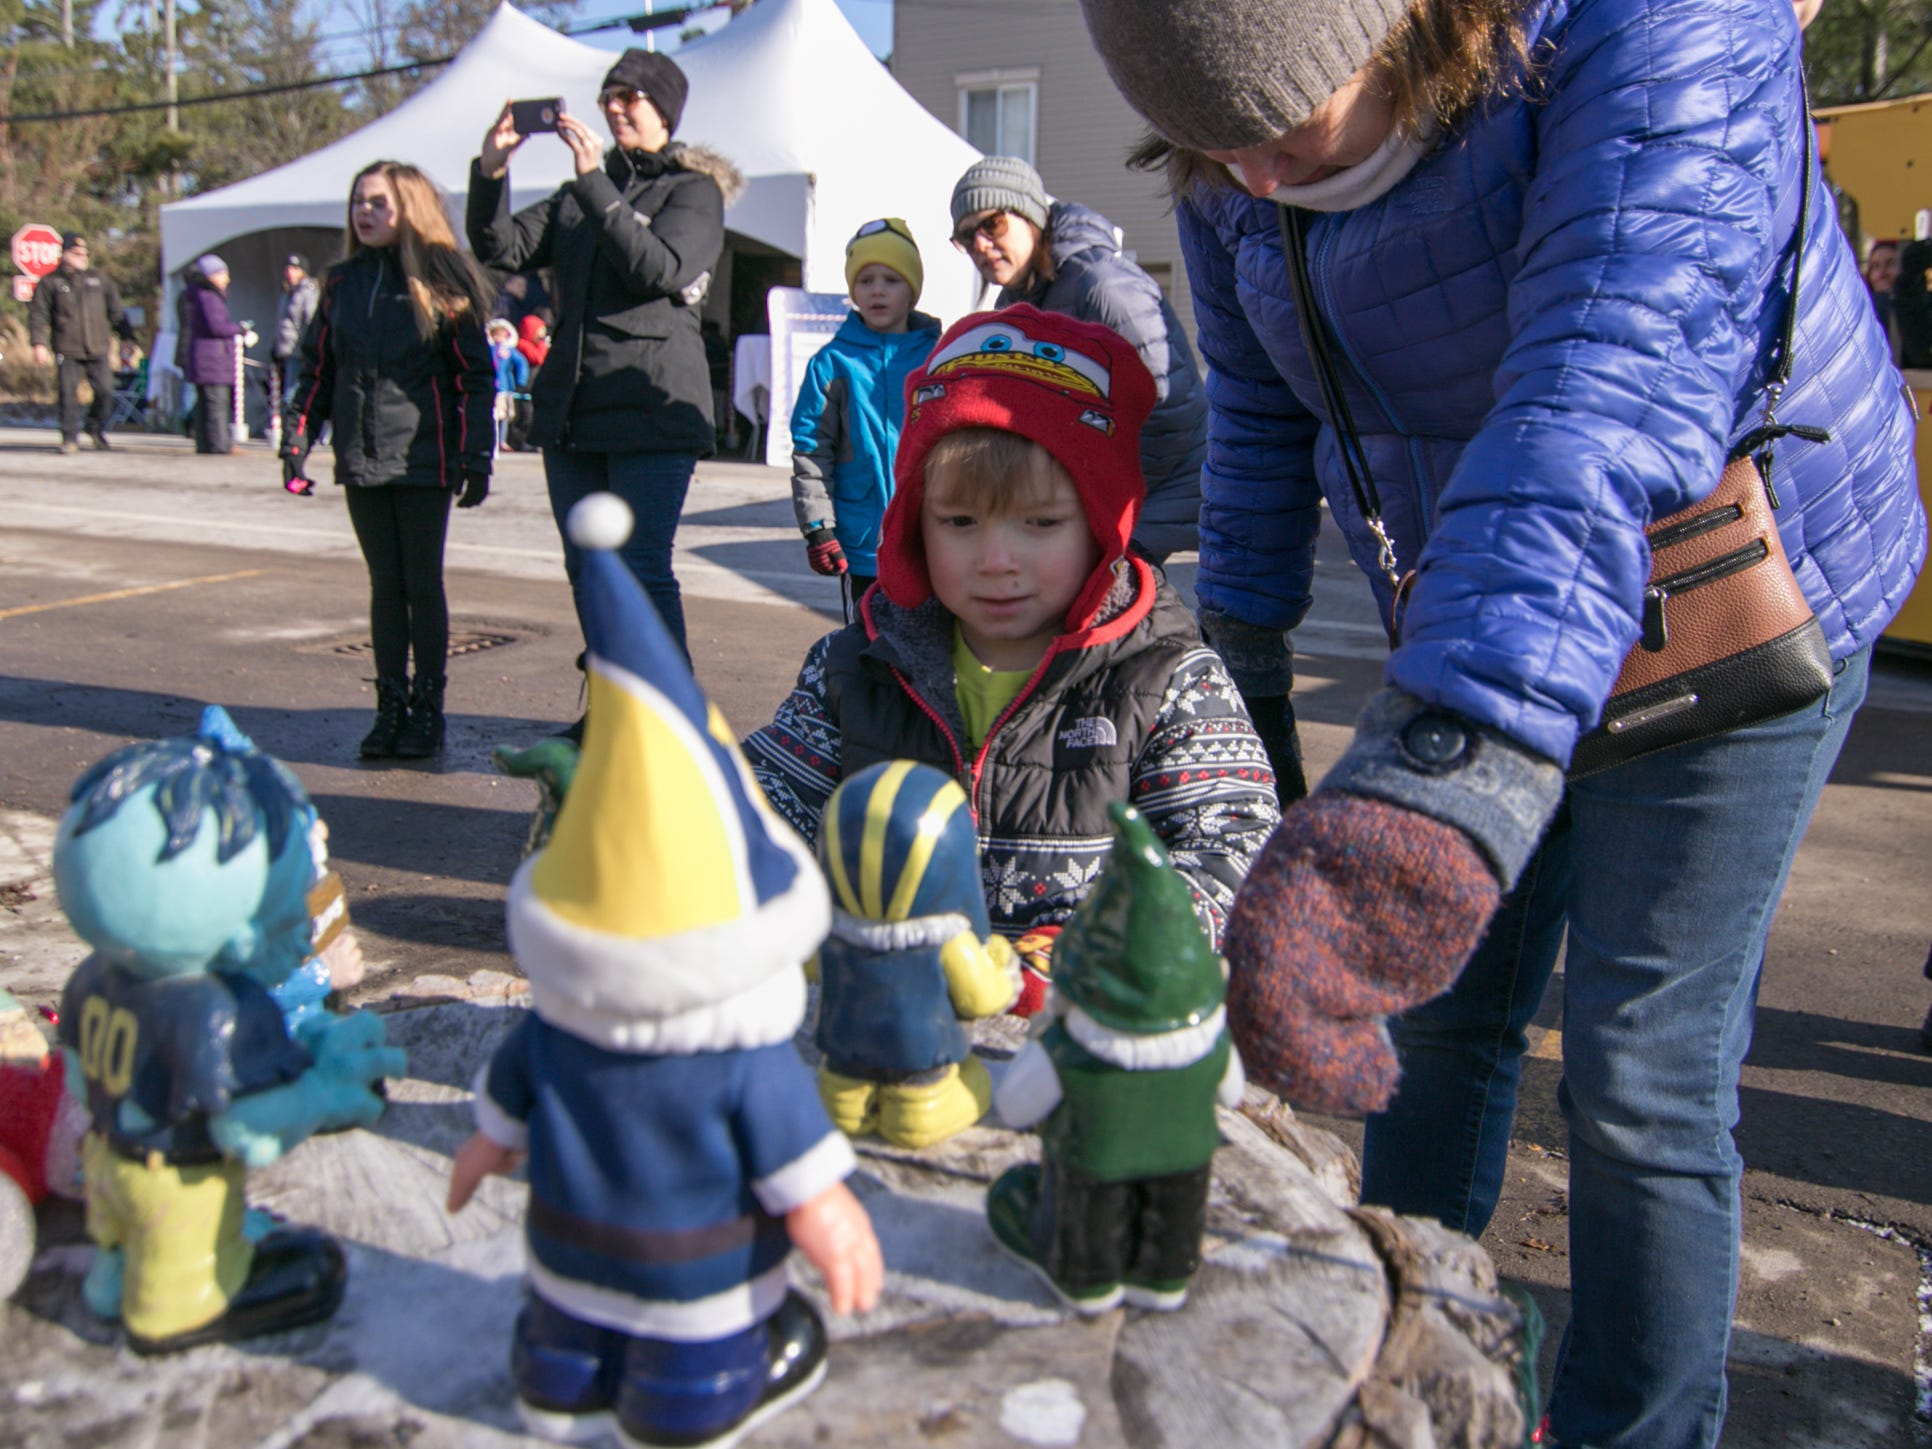 3-year-old Hunter Zurek and grandmother Marilyn Zurek look at gnomes displayed on a stump along Avon St. in Hartland for Polar Express Day Saturday, Dec. 8, 2018.